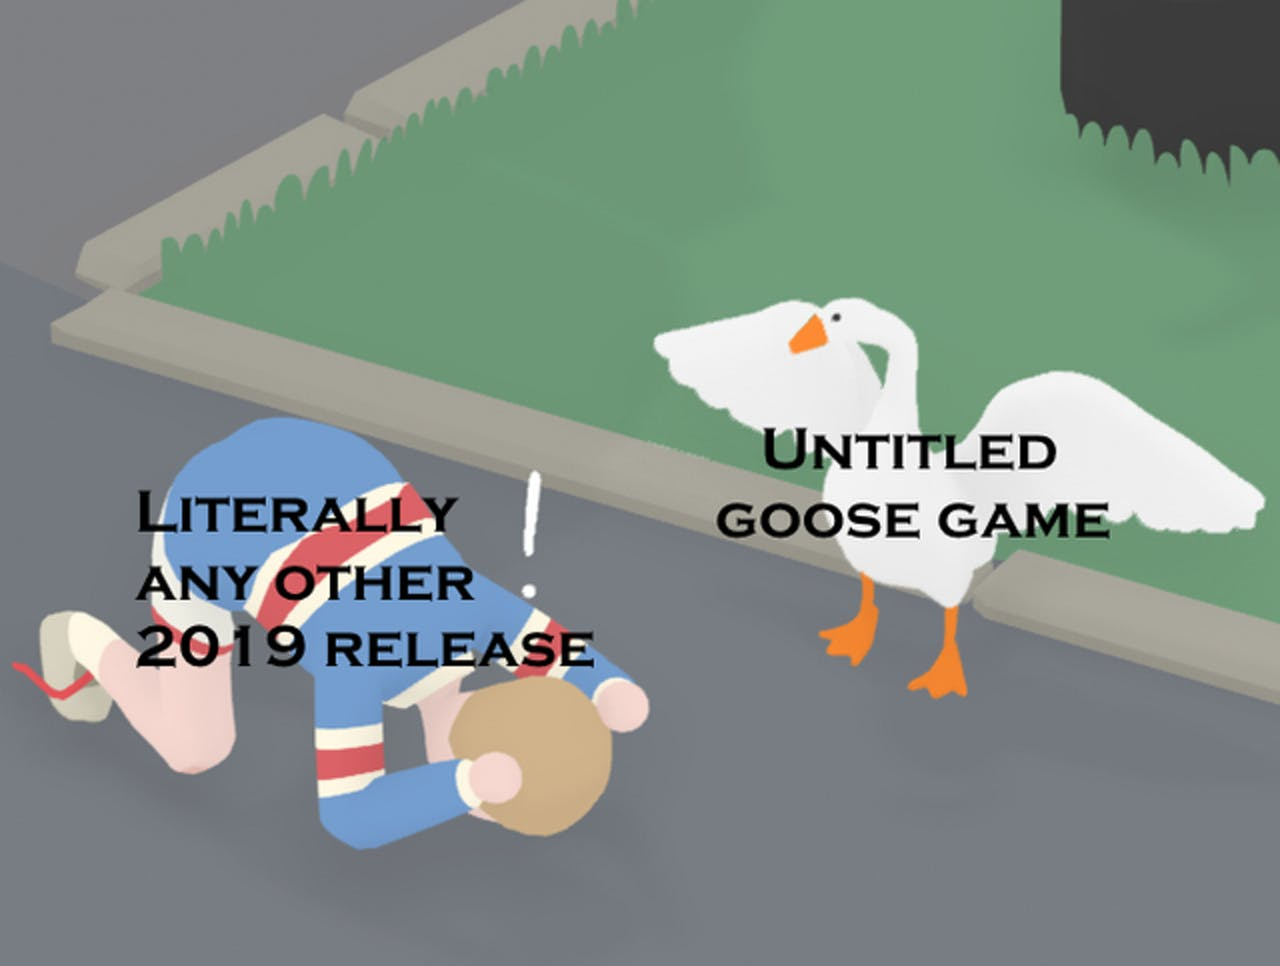 Untitled Goose Game is better than literally any other 2019 release.